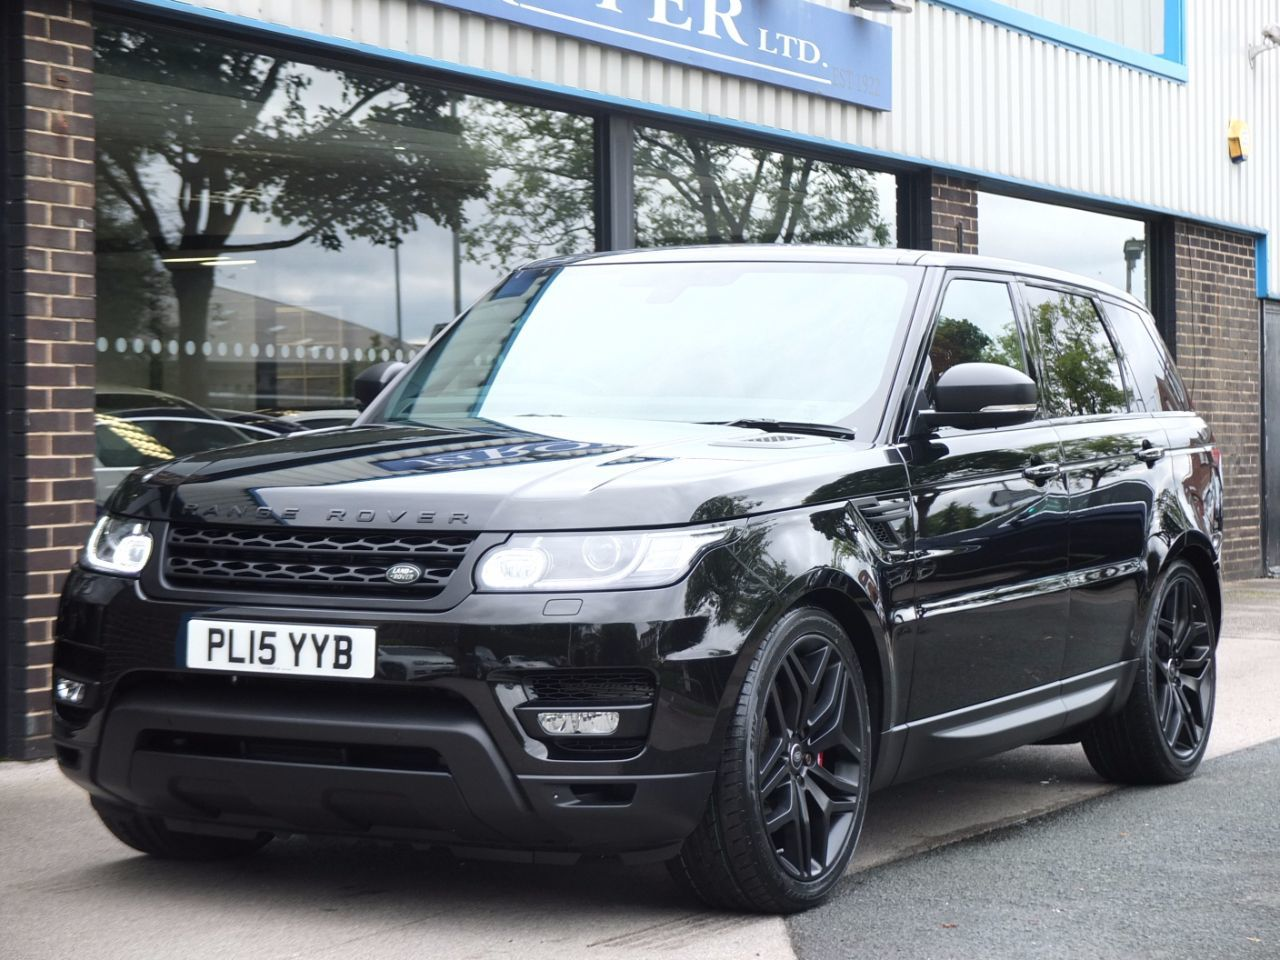 Land Rover Range Rover Sport 3.0 SDV6 HSE Dynamic (Pan Roof, Stealth Pack, 22In Alloy Wheels) Estate Diesel Santorini BlackLand Rover Range Rover Sport 3.0 SDV6 HSE Dynamic (Pan Roof, Stealth Pack, 22In Alloy Wheels) Estate Diesel Santorini Black at fa Roper Ltd Bradford